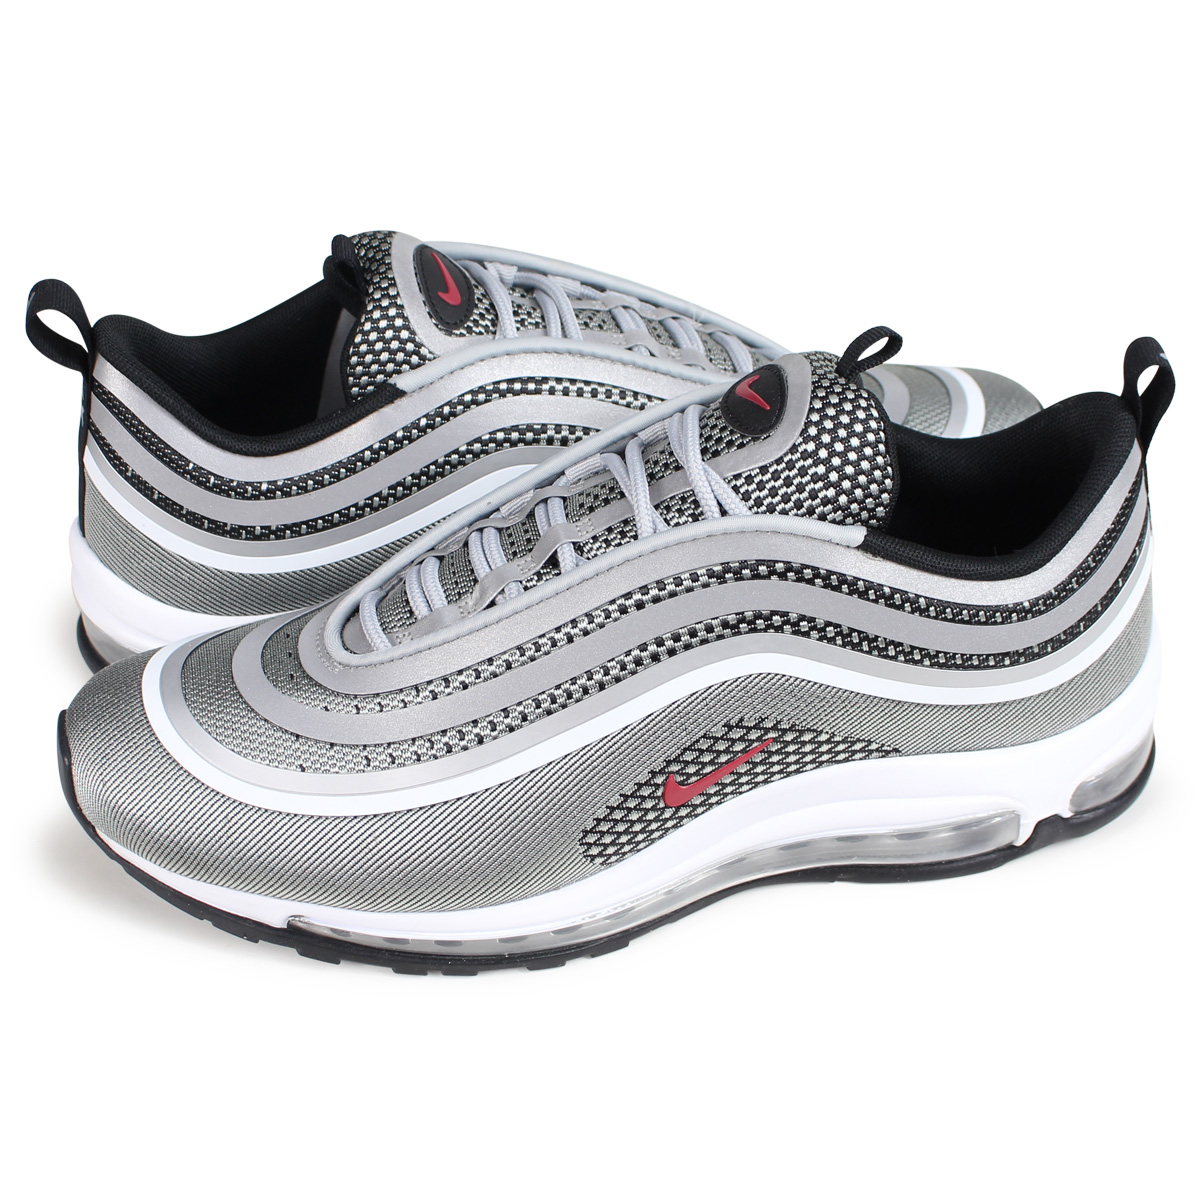 Men's men store limited NIKE AIR MAX 97 ULTRA 17 WOLF GREY, WHITE & DARK GREY 918,356 007 Kie Ney AMAX 97 ultra 17 wolf gray white dark gray shoes